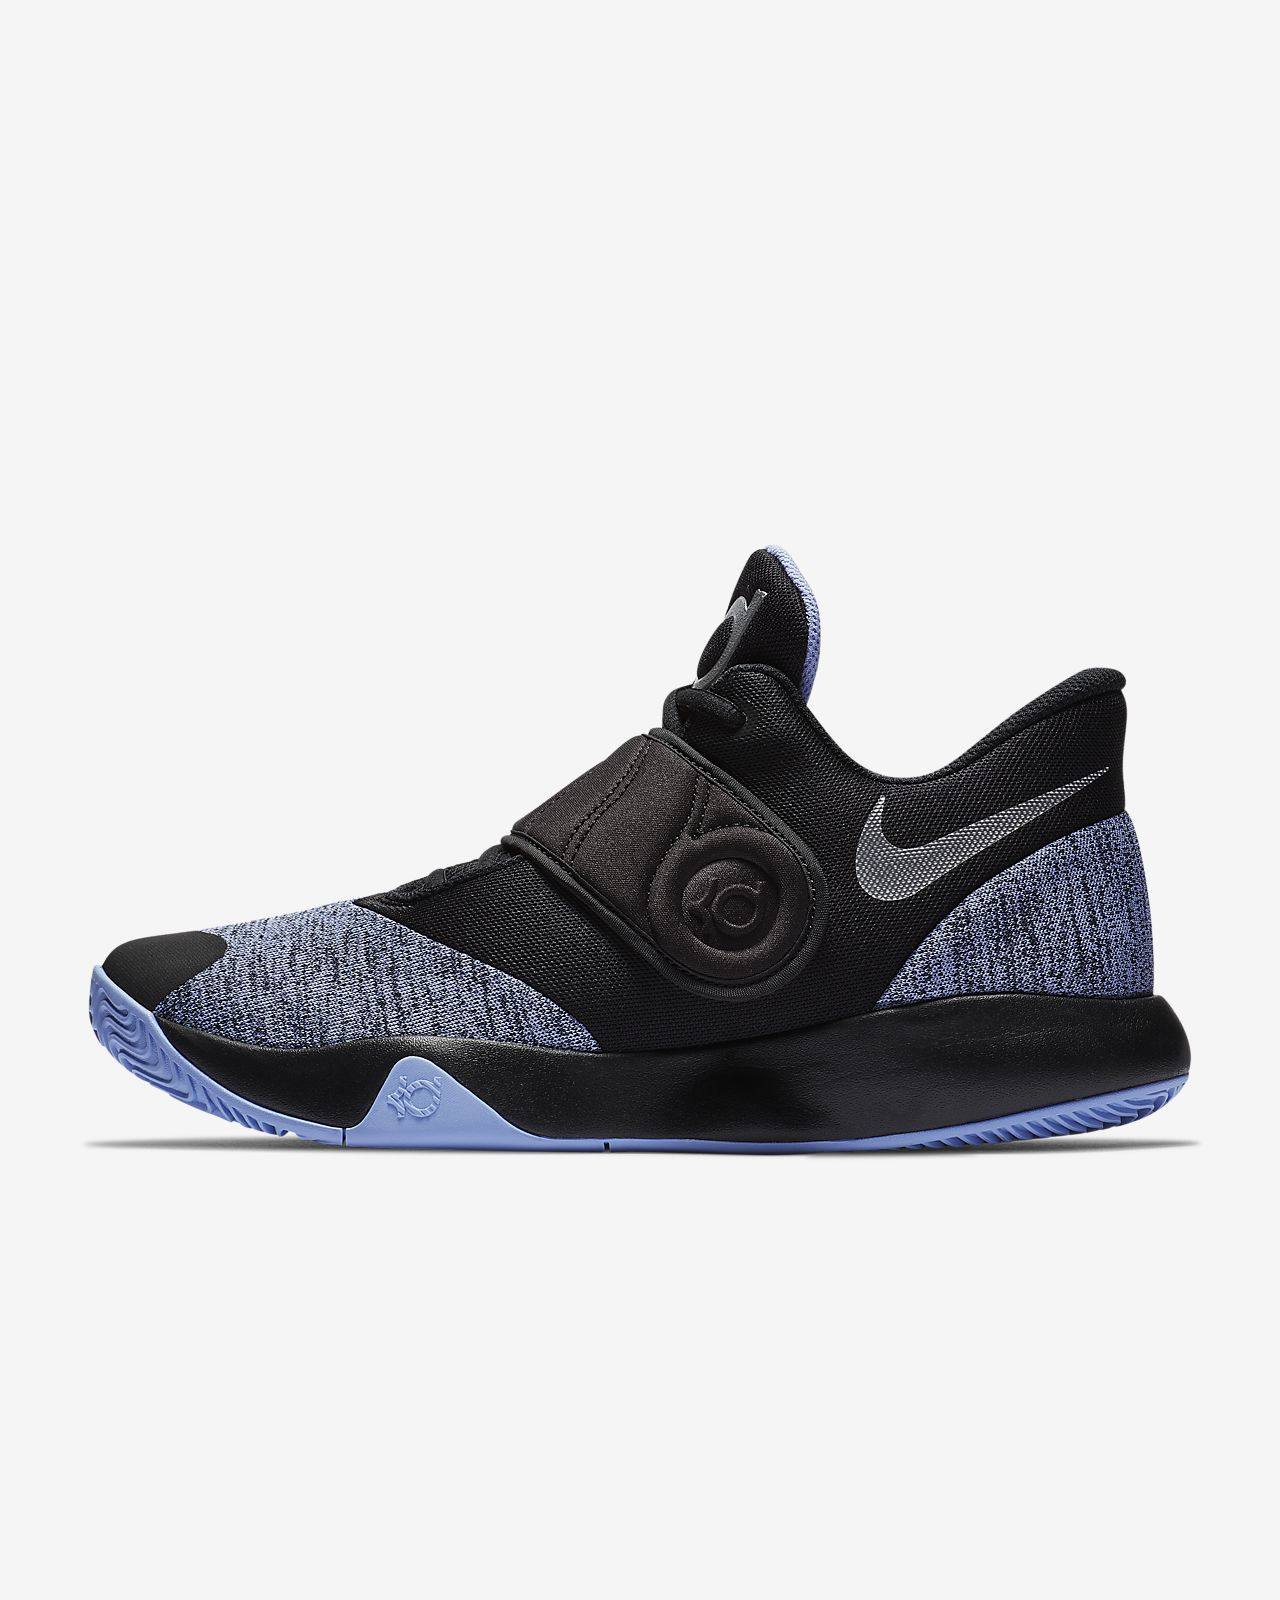 81d651daff7c inexpensive nike kd trey 5 iii 749377 mens grey university red blue  basketball sneakers a2581 f11e8  sweden nike kd trey 5 vi basketball shoe  612be daf25